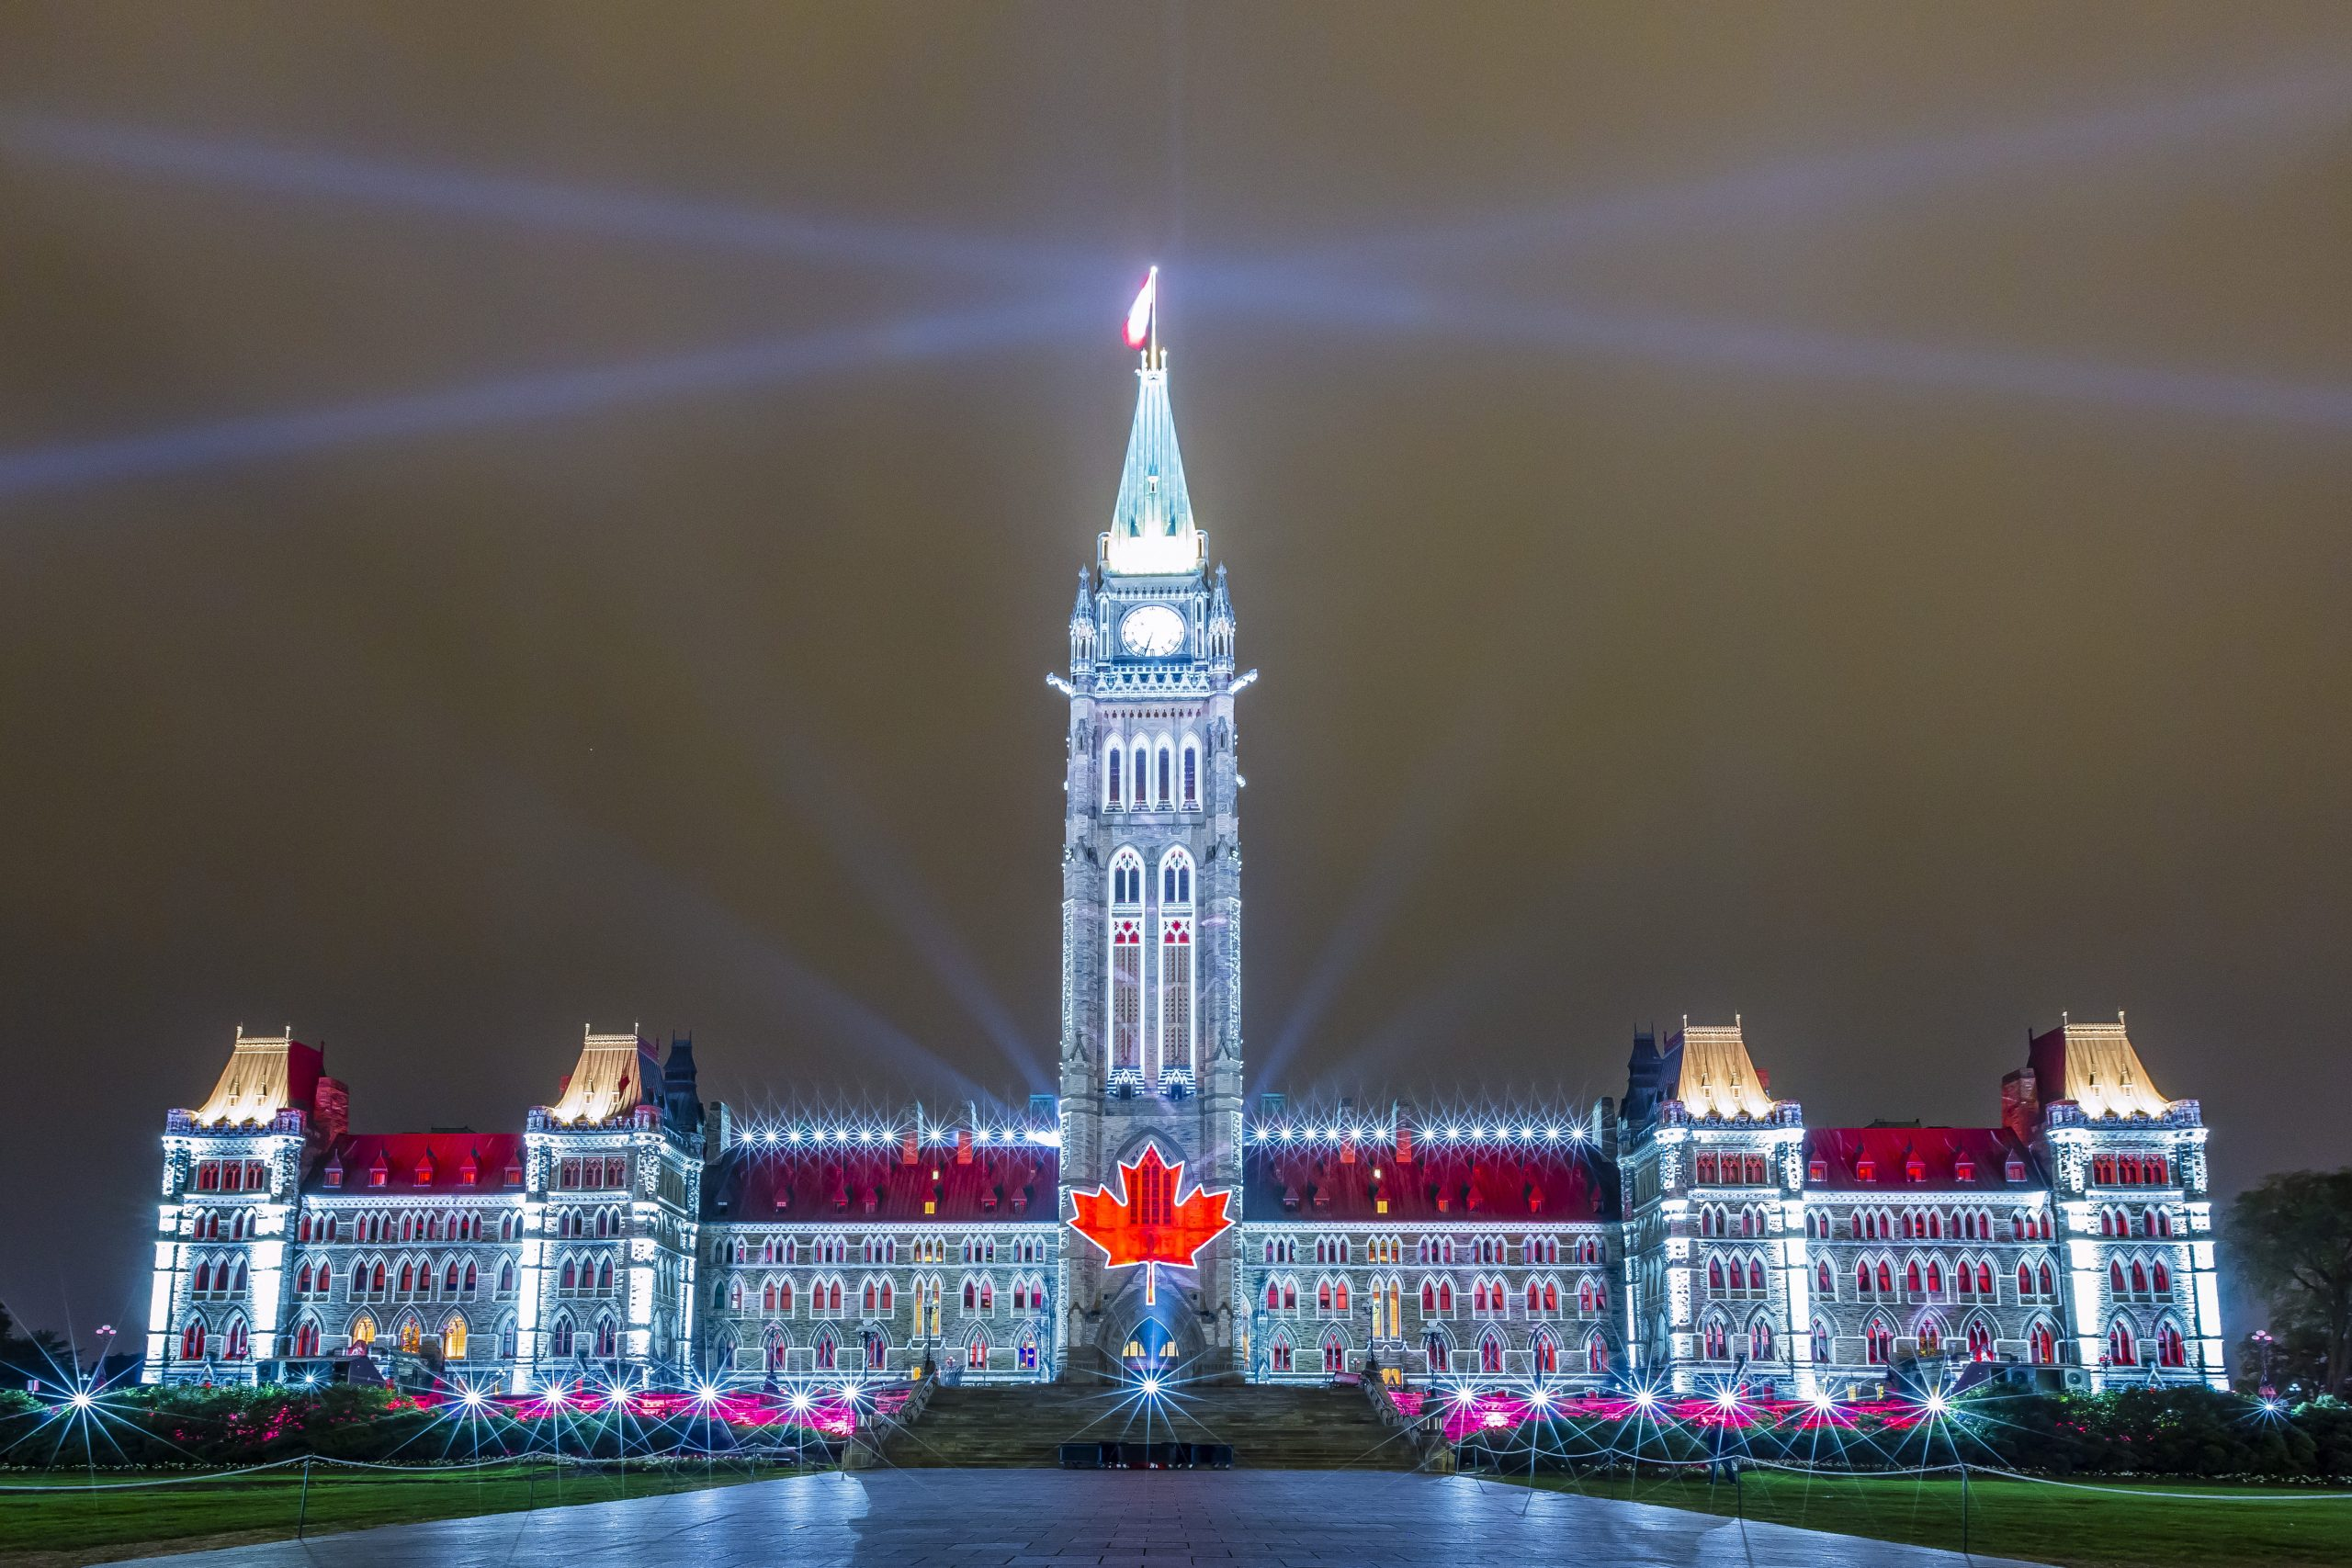 CANADA DAY FESTIVITIES Around KW this weekend!